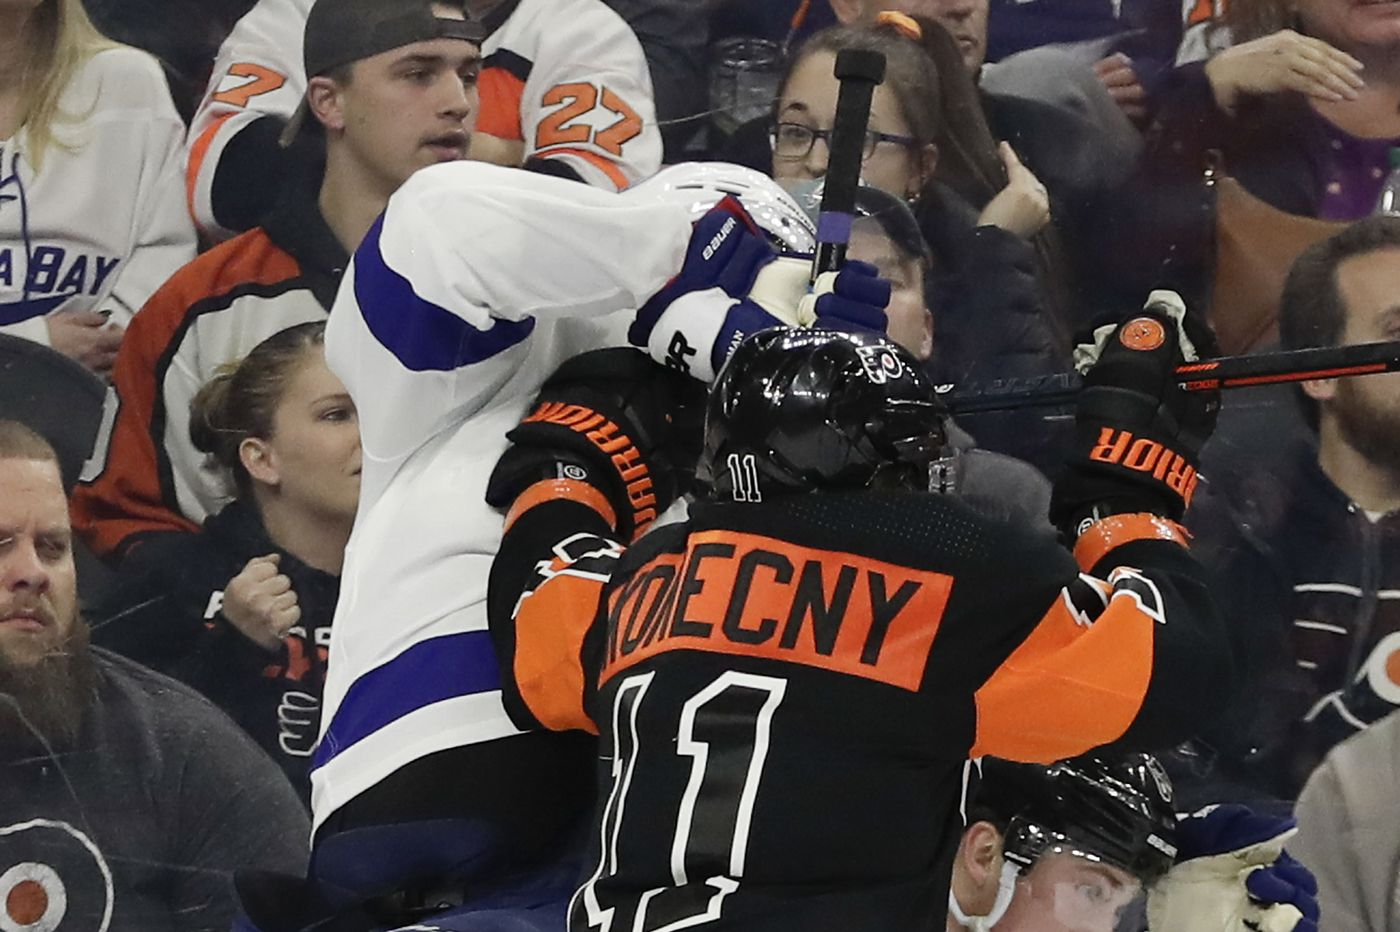 Travis Konecny, Flyers gaining national attention with recent surge | On the Fly